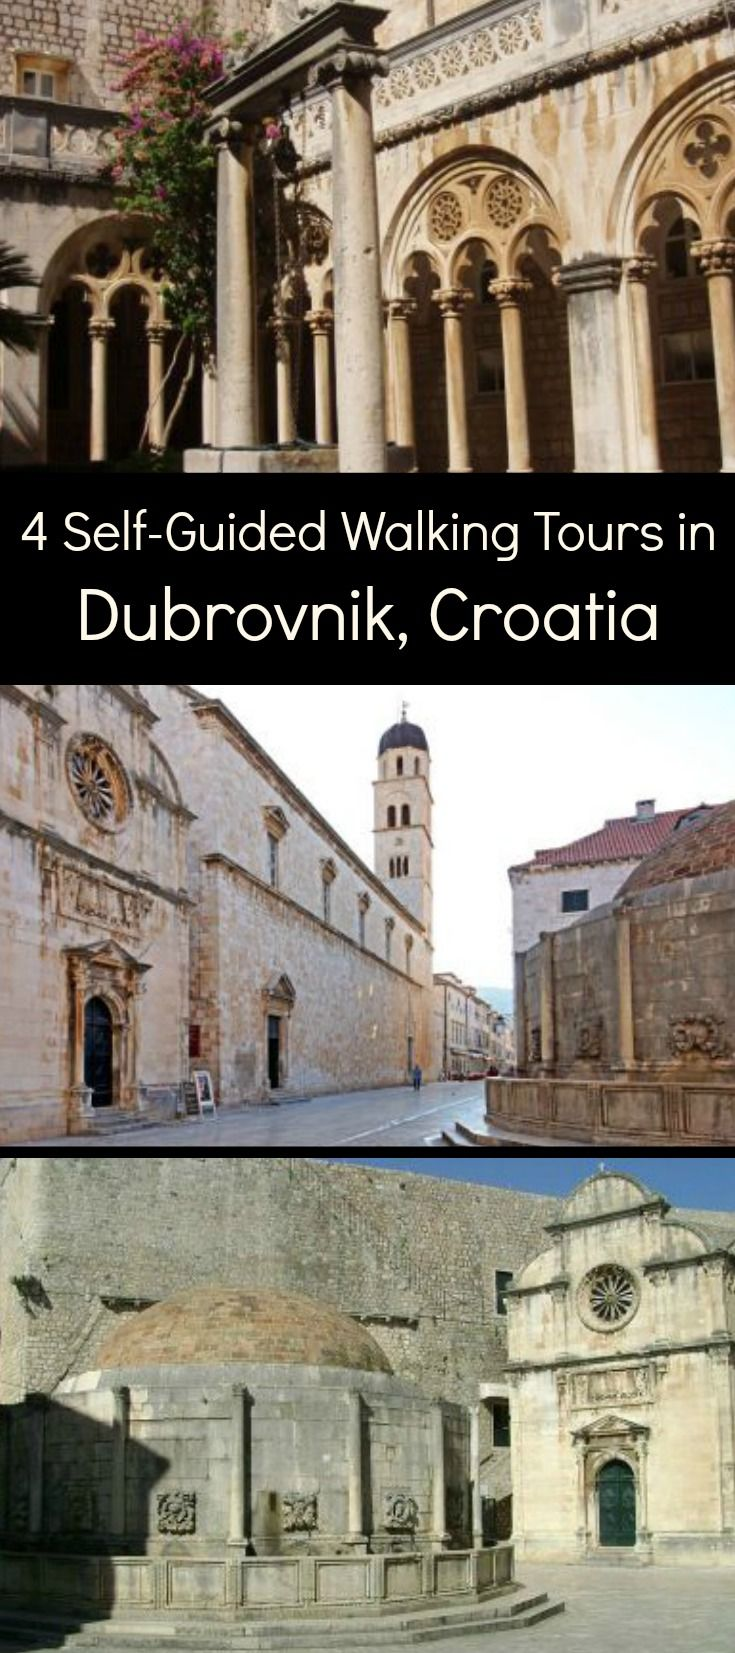 Discover dubrovnik old town guided walking tour - Follow These 4 Expert Designed Self Guided Walking Tours To Explore The City On Foot